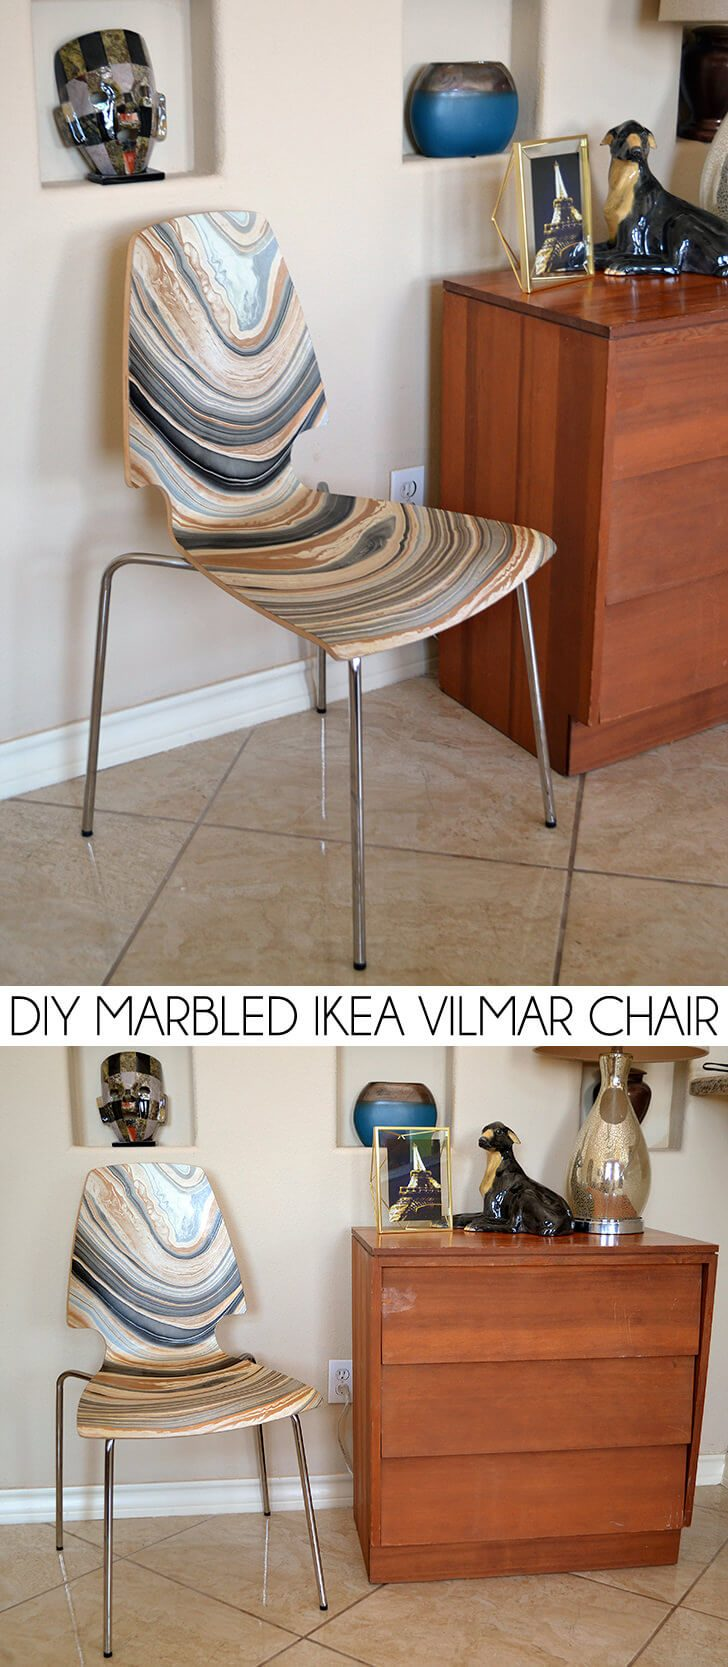 DIY Marbled IKEA Vilmar Chair